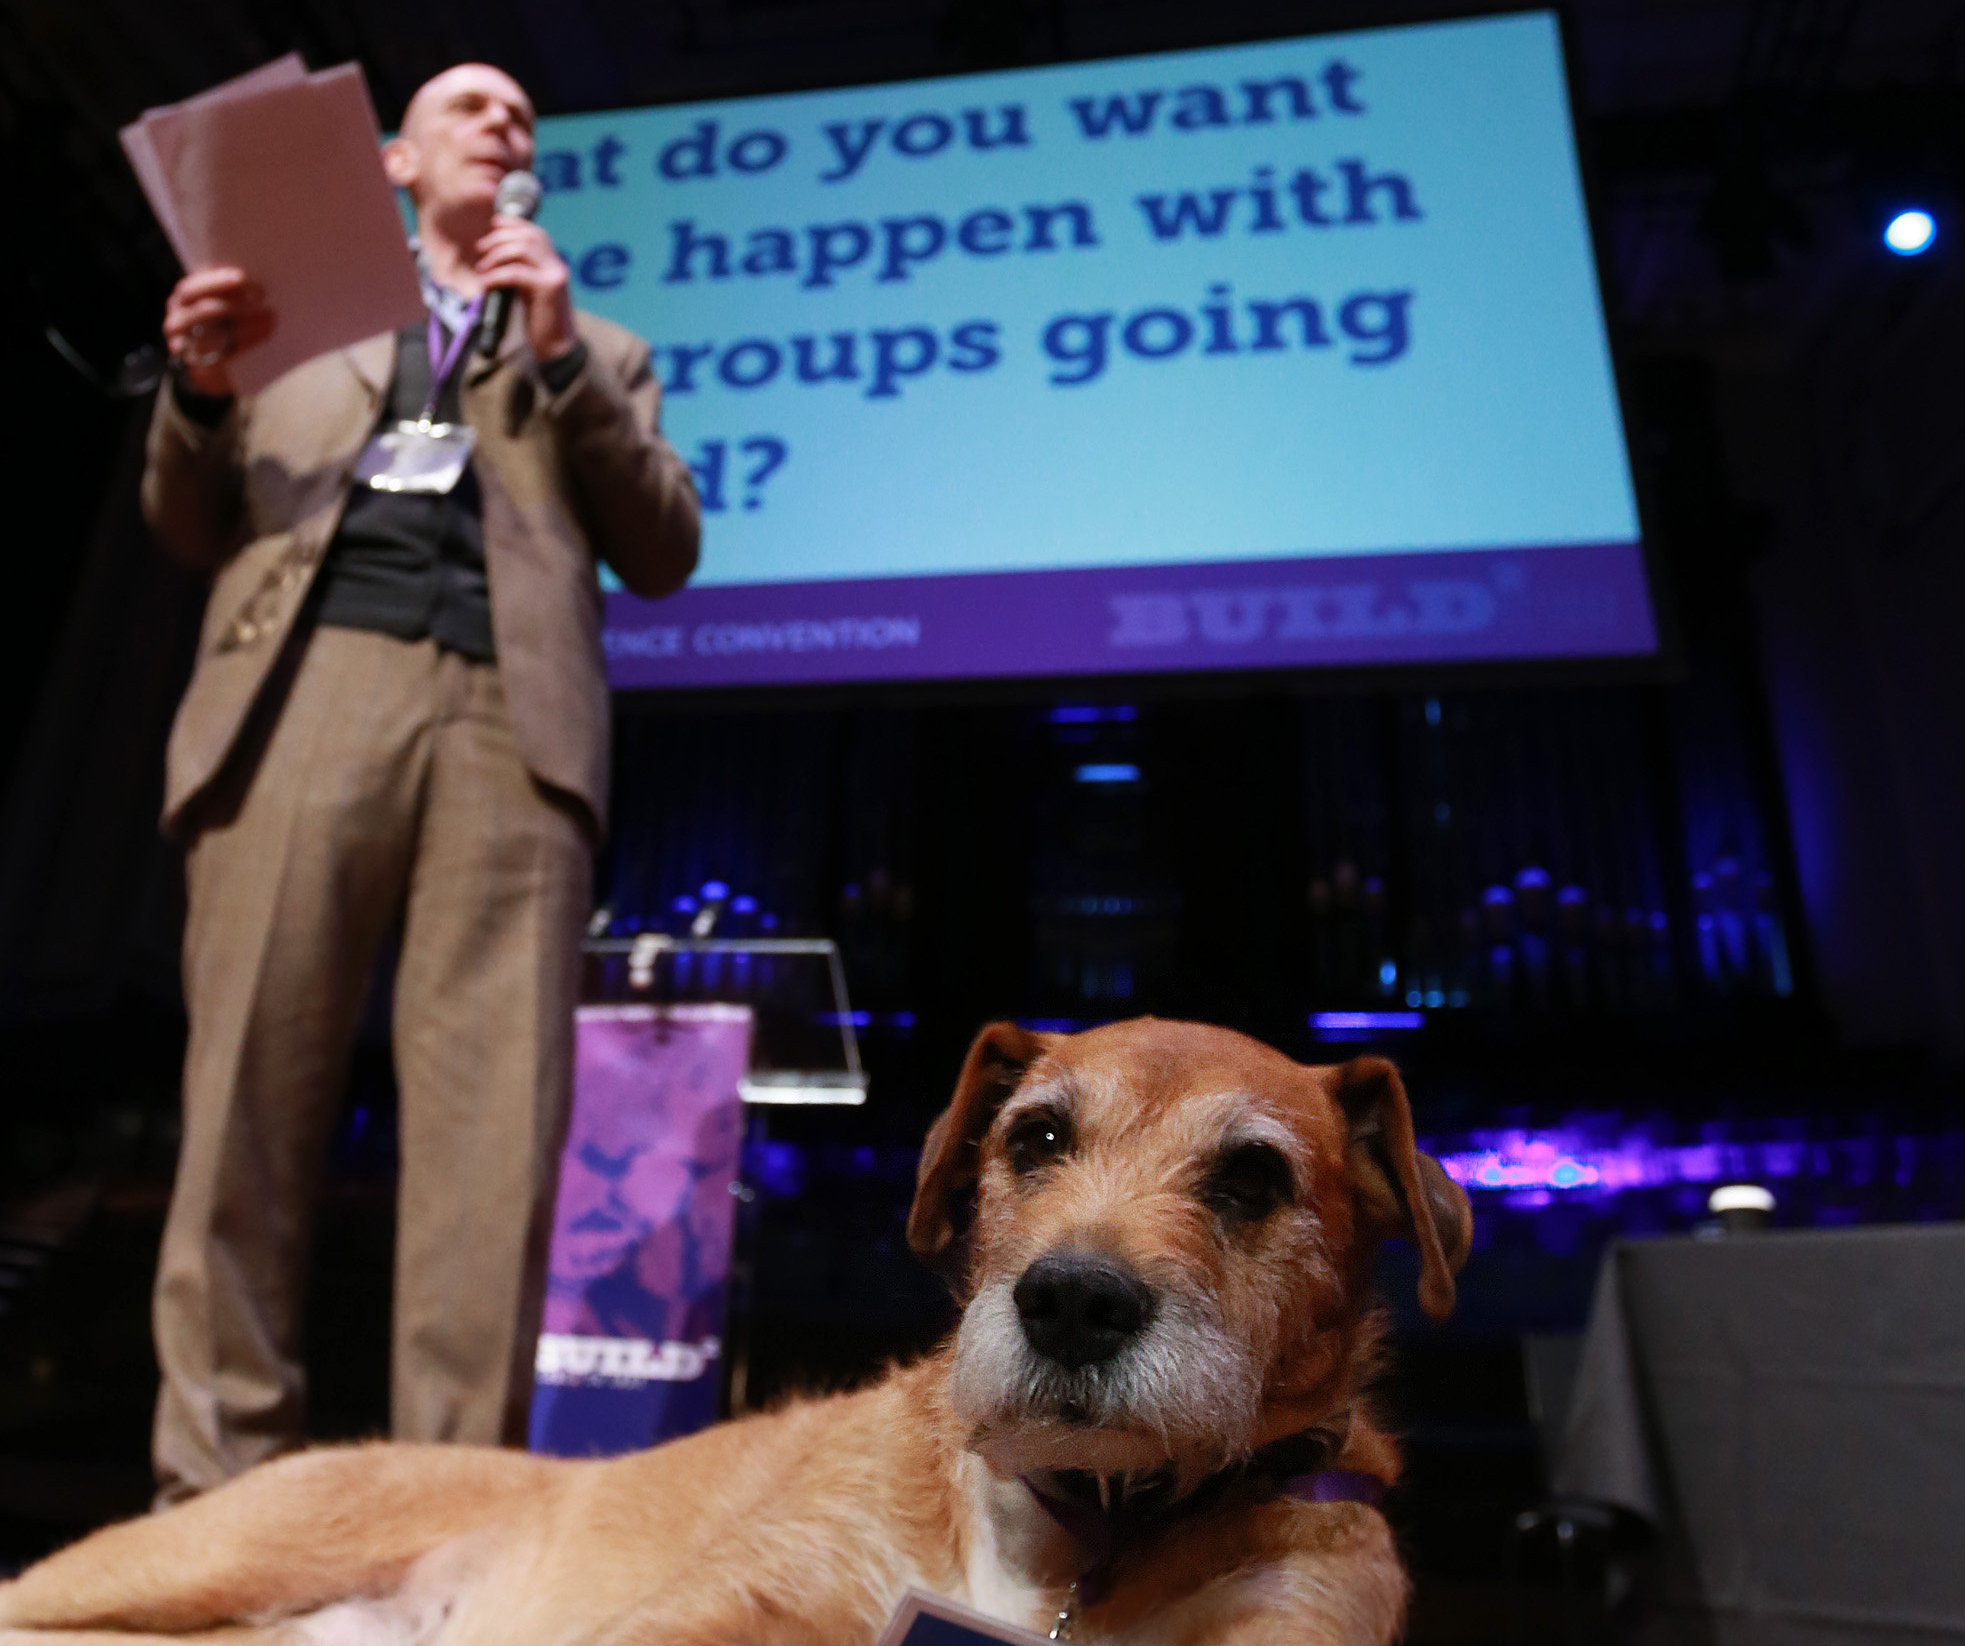 The Wee Ginger Dug will be on the road this year as the grassroots indy movement ramps up its visibility